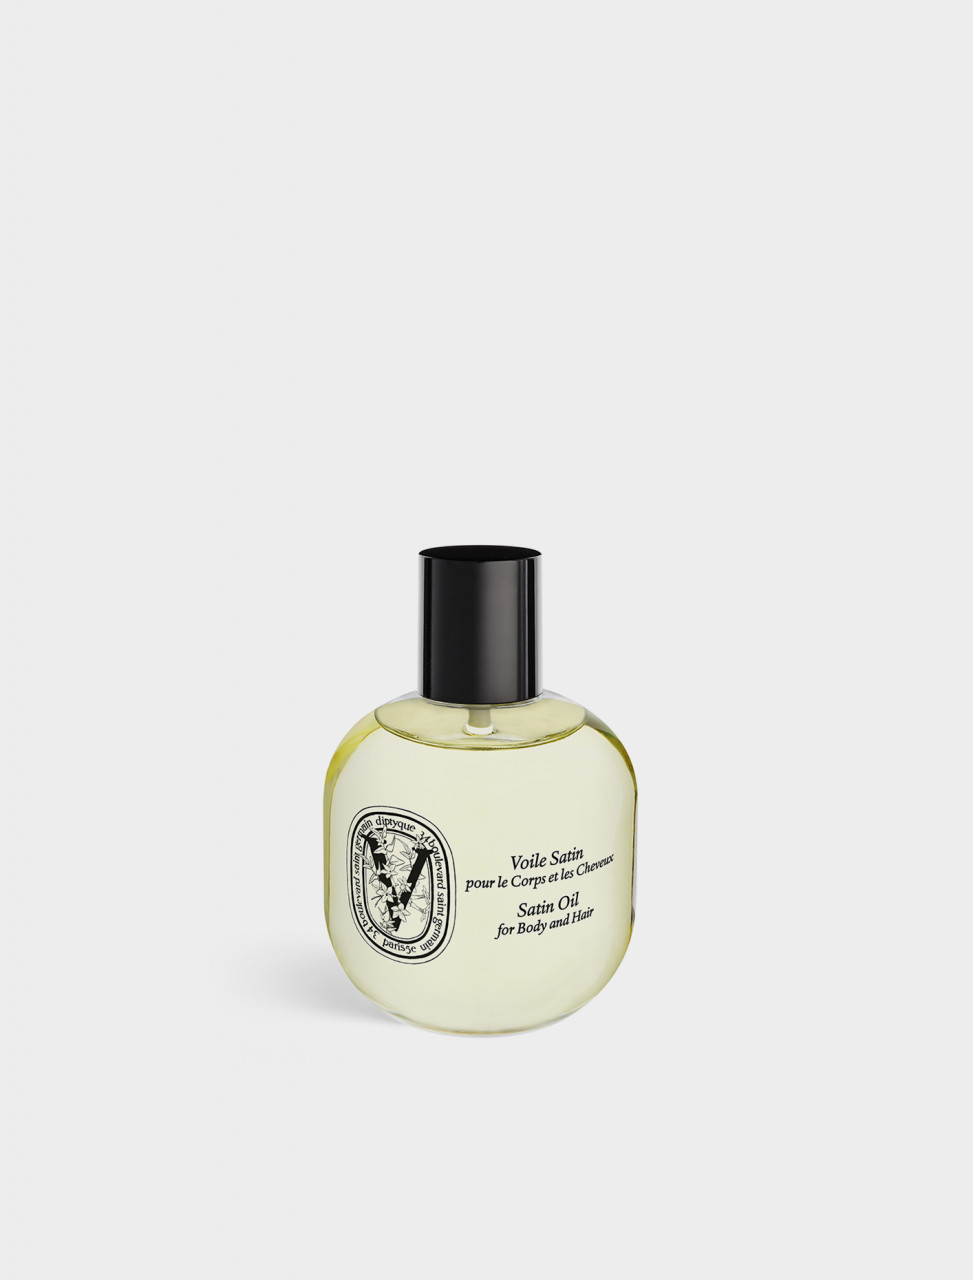 337-SATINOIL DIPTYQUE SATIN OIL HAIR AND BODY